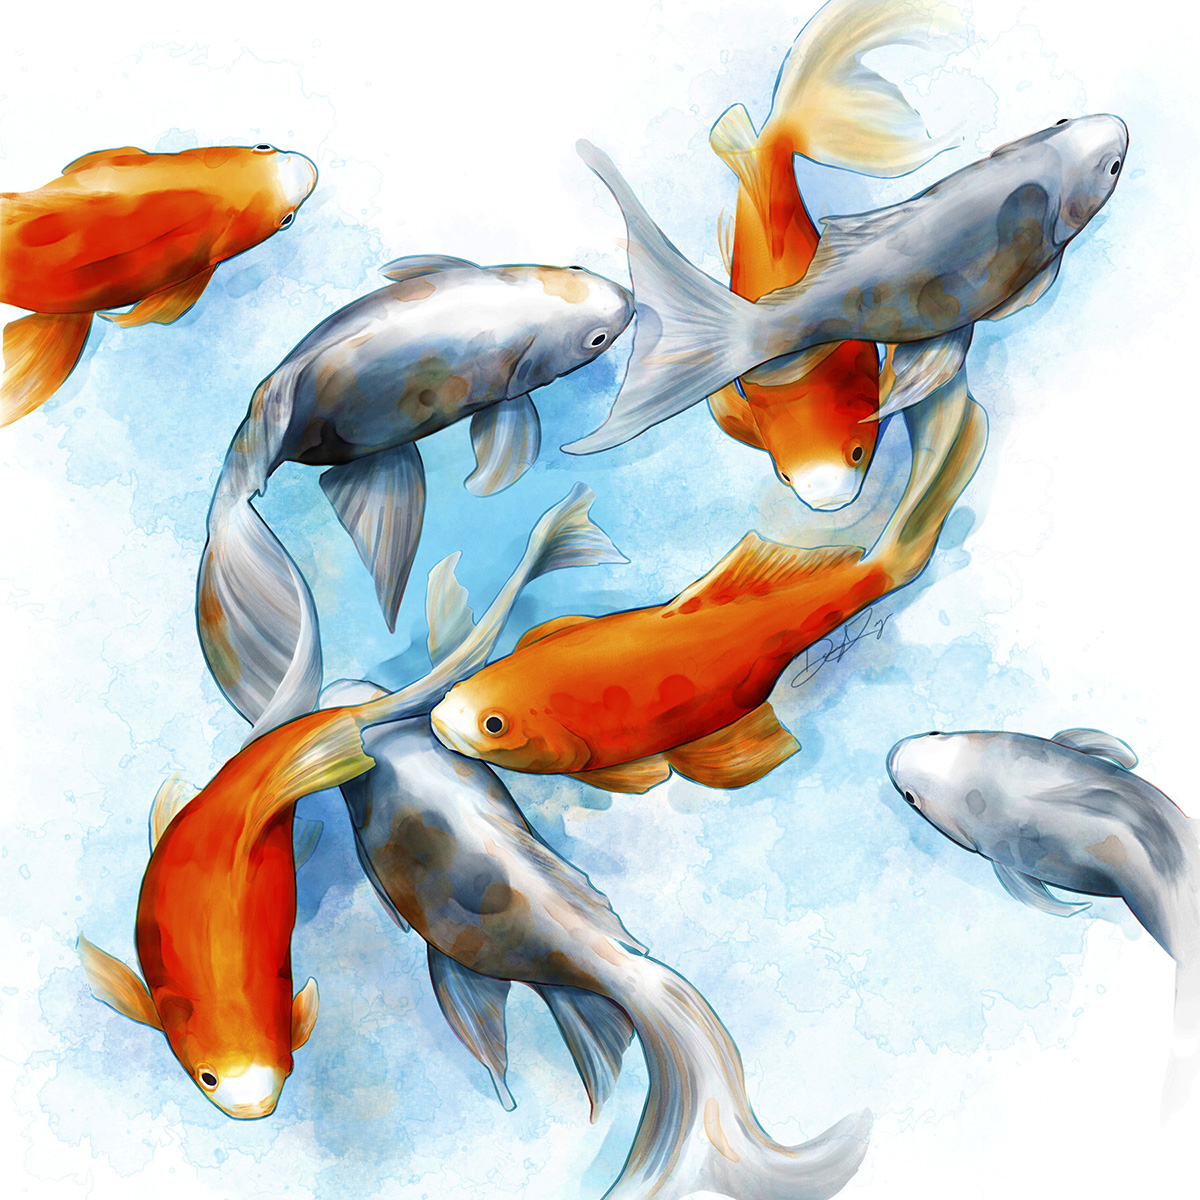 Goldfish in the formation of a double-helix